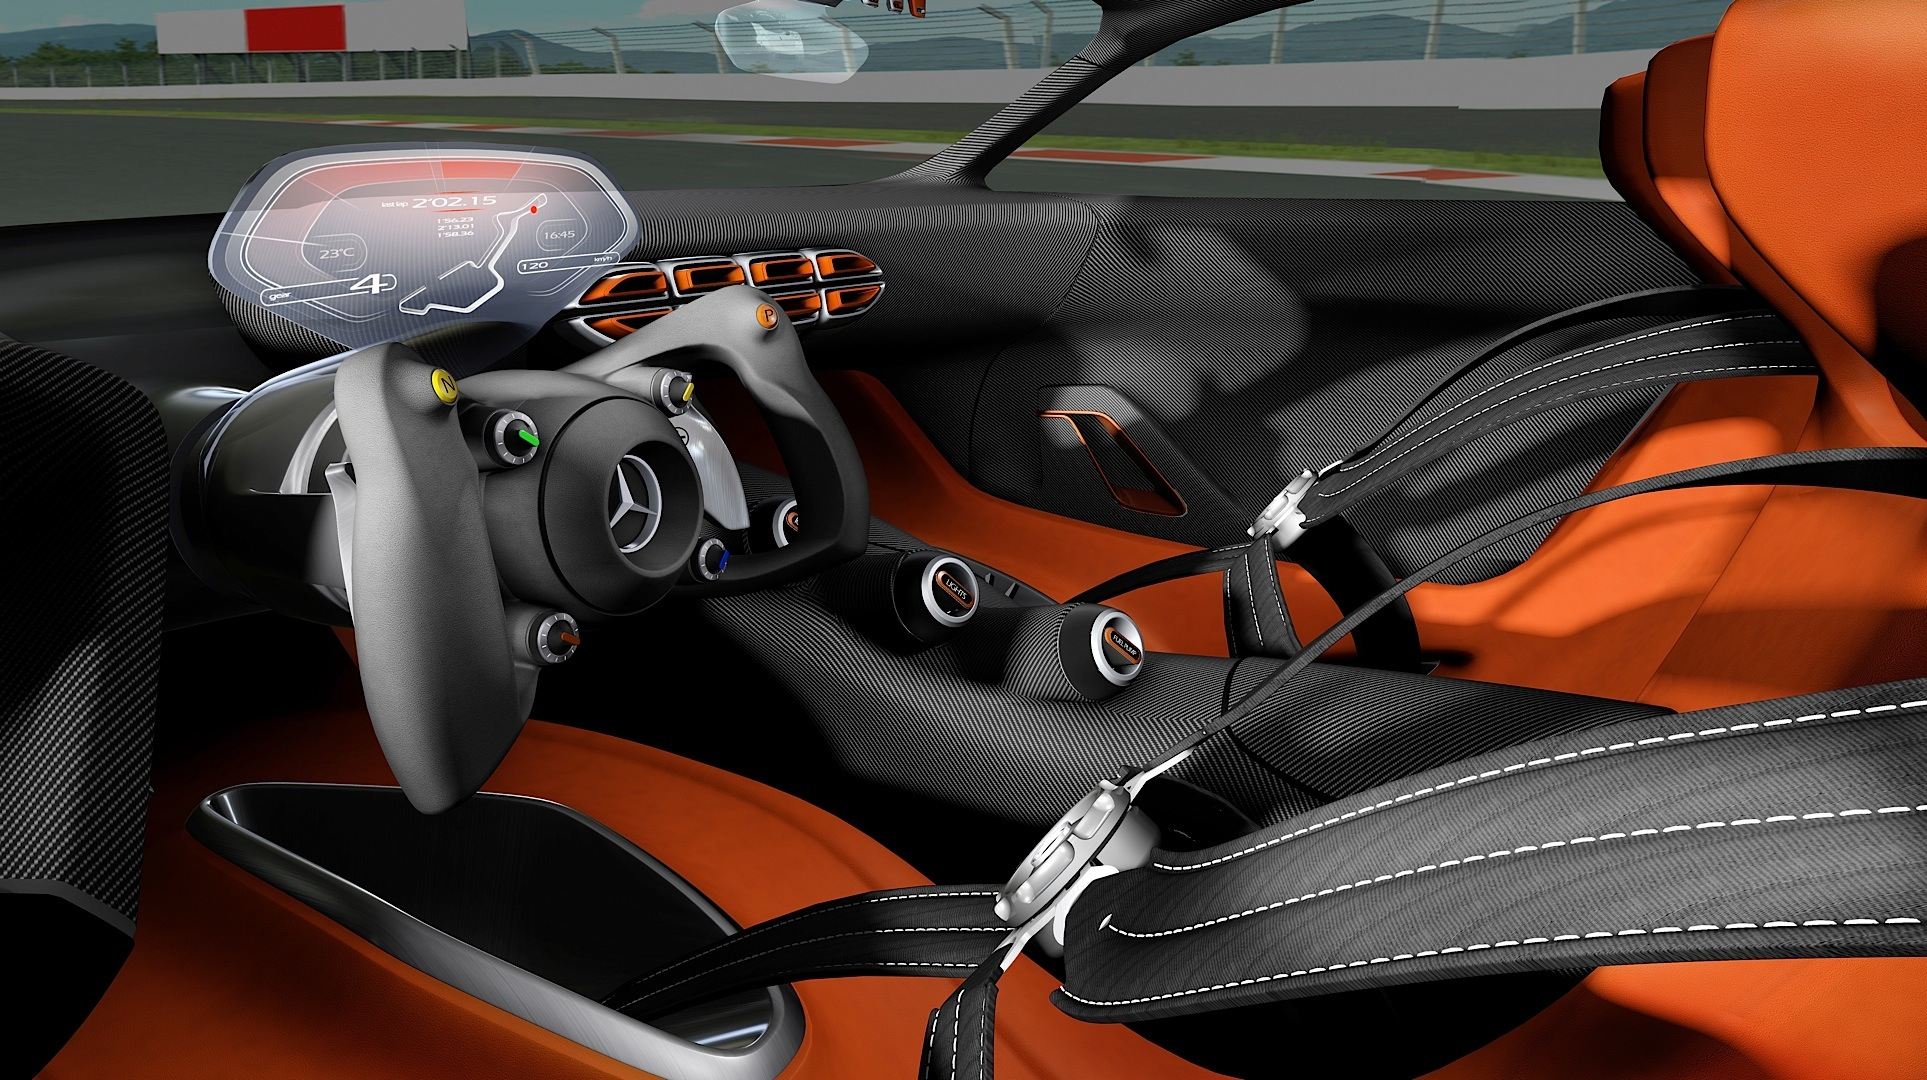 2013 - [Mercedes-Benz] AMG Vision Gran Turismo - Page 2 It-sure-is-tight-in-the-amg-vision-gran-turismo-photo-gallery-1080p-6